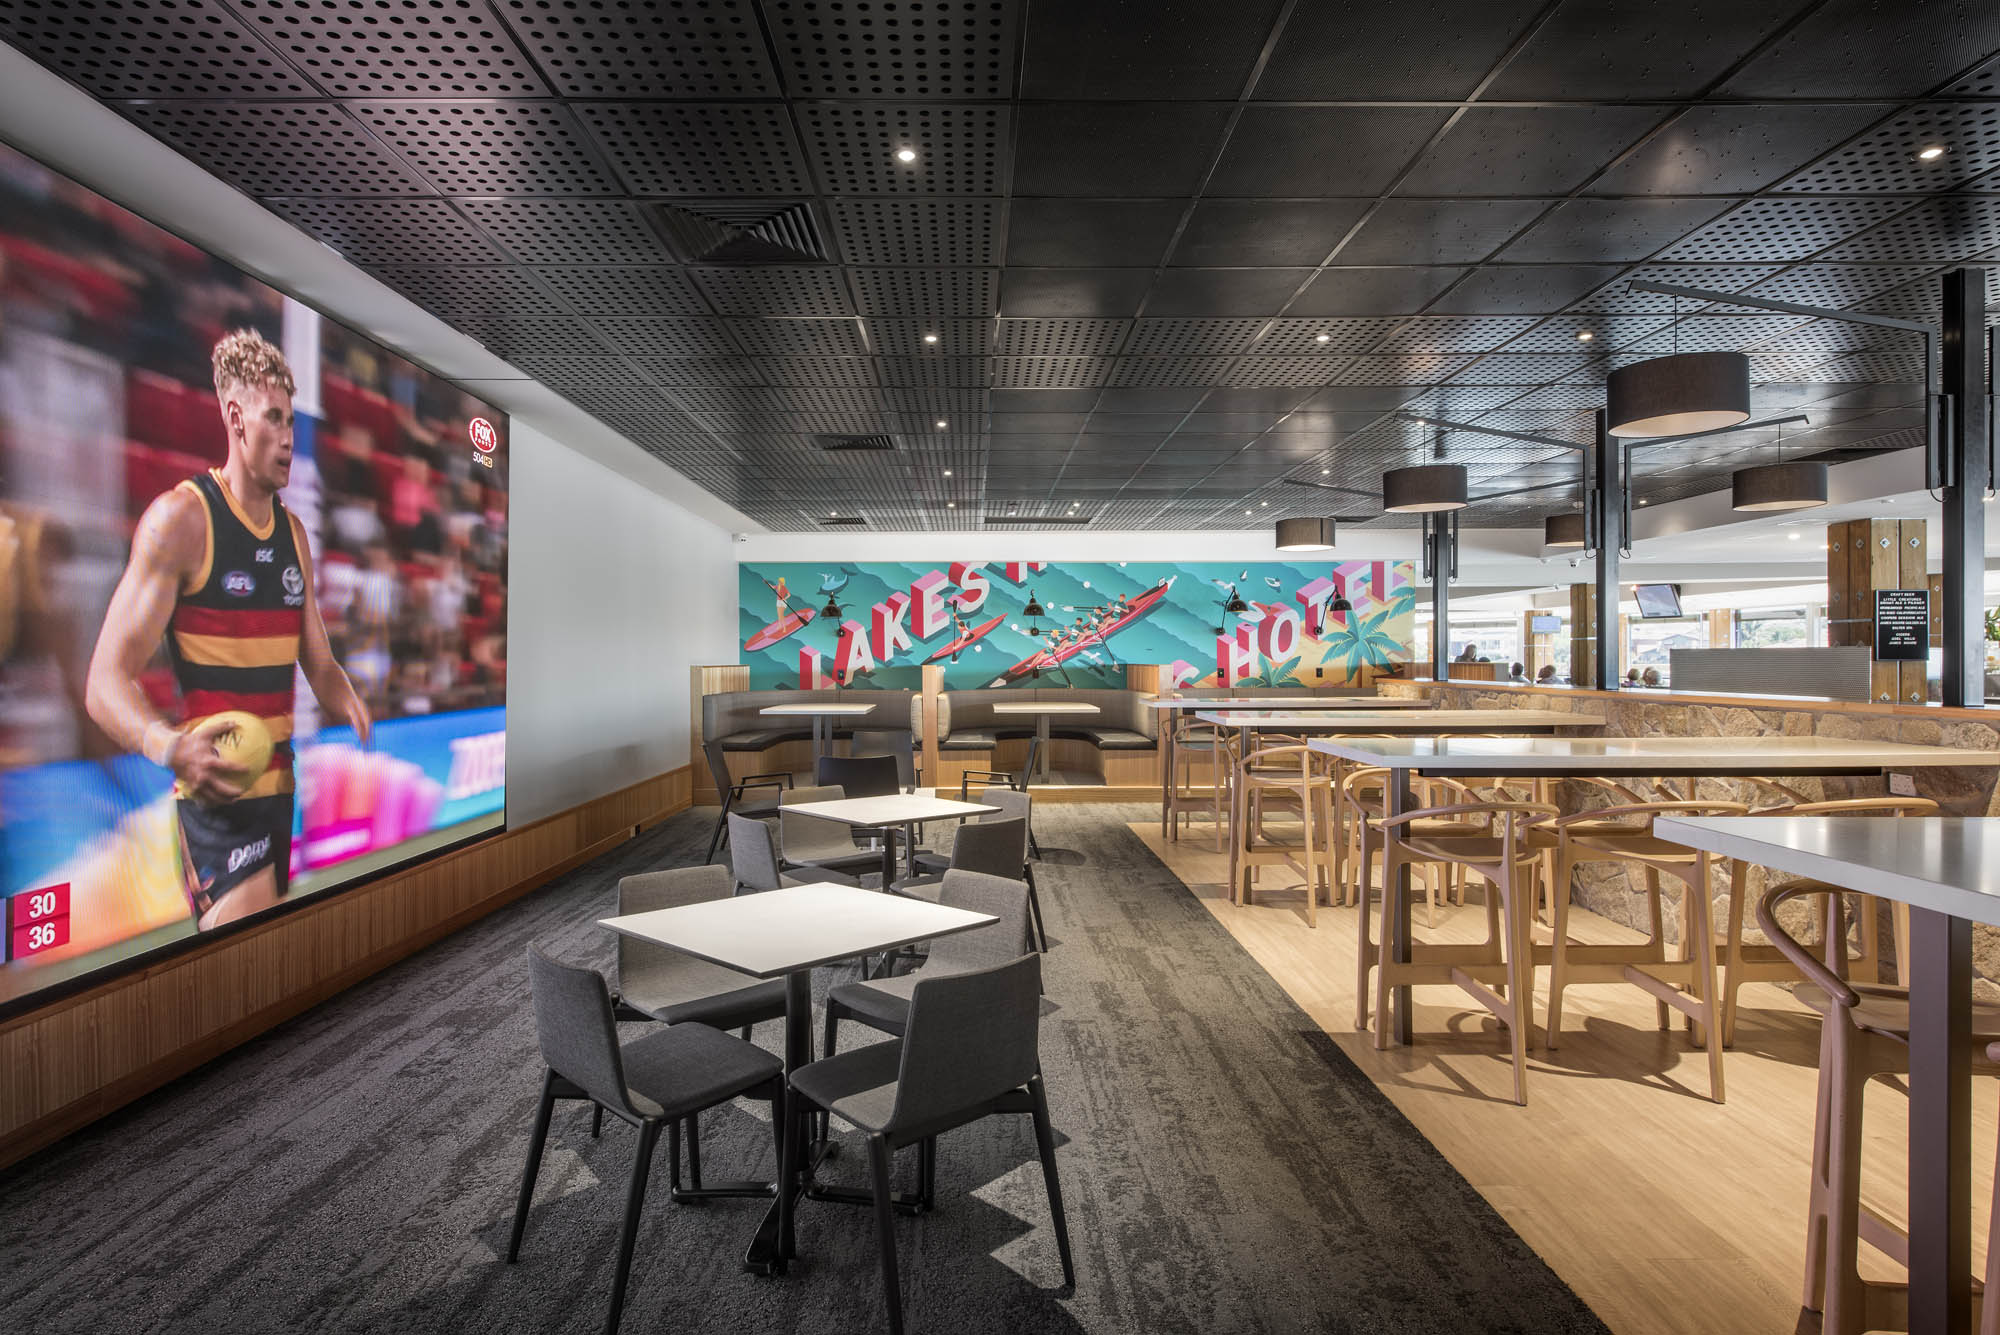 lakes hotel hospitality interior construction sa adelaide west lakes sports bar signage big screen tv afl football food high tables high stools